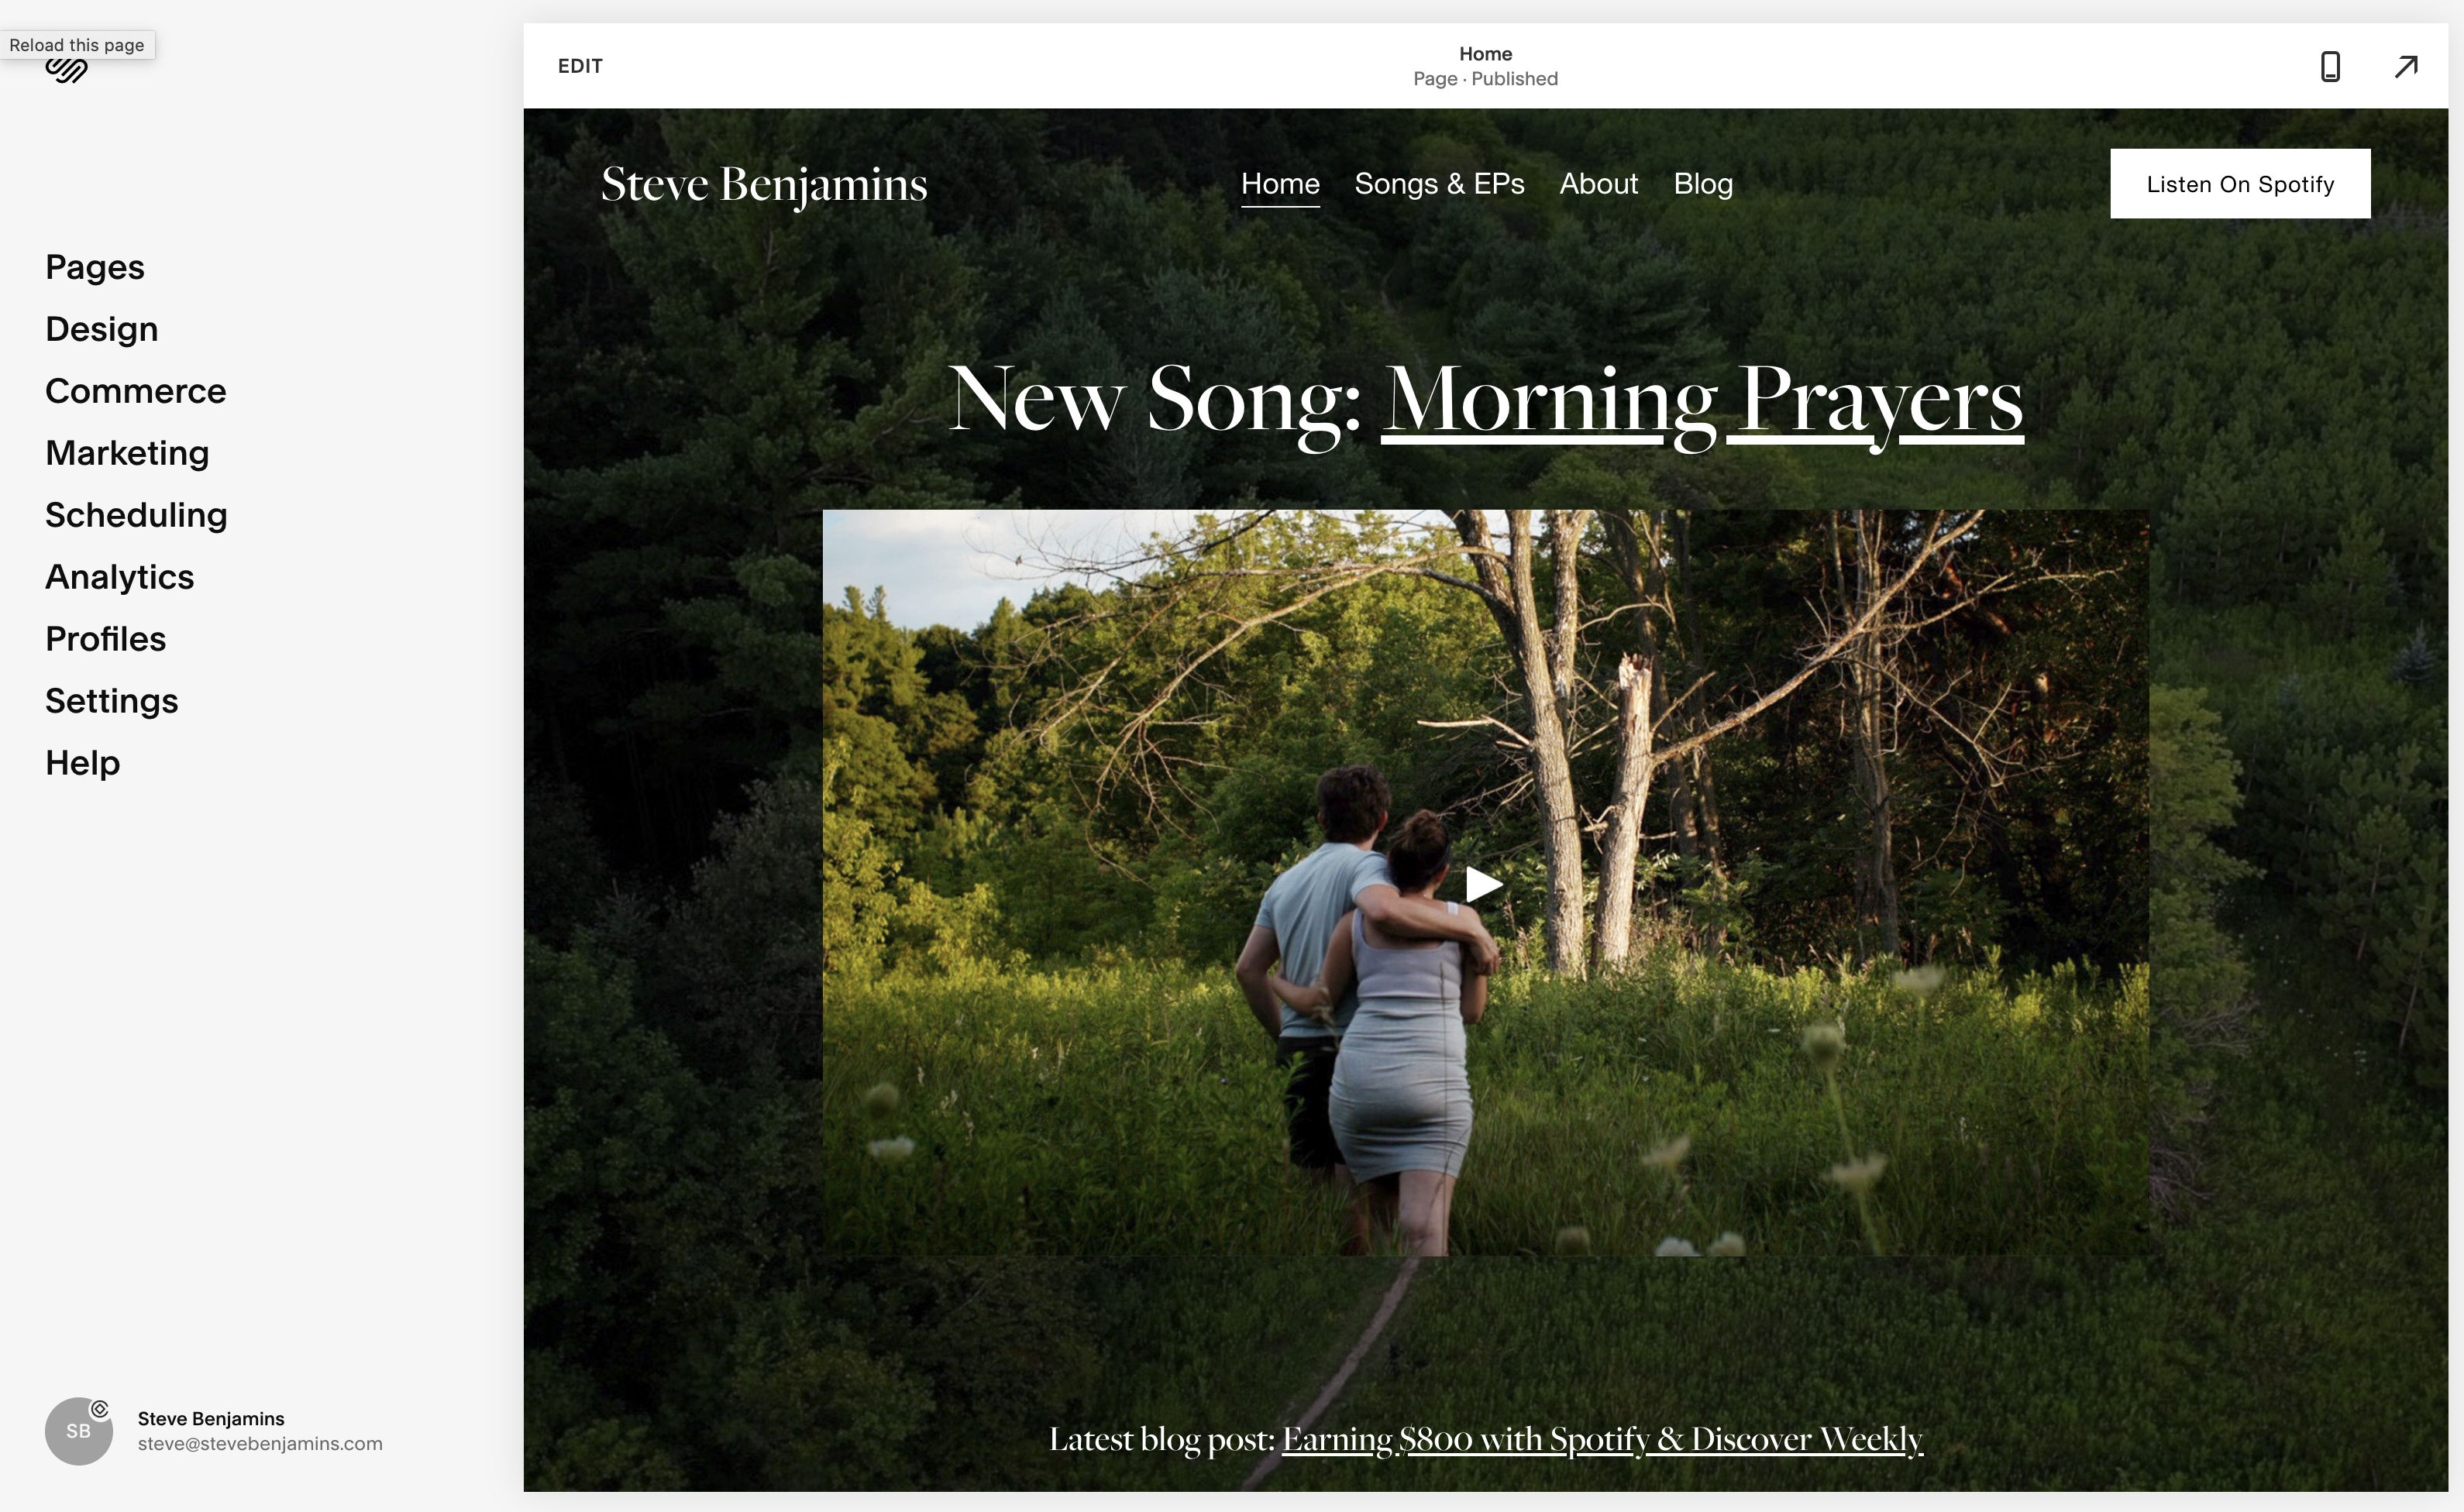 The website we'll be building in Squarespace.